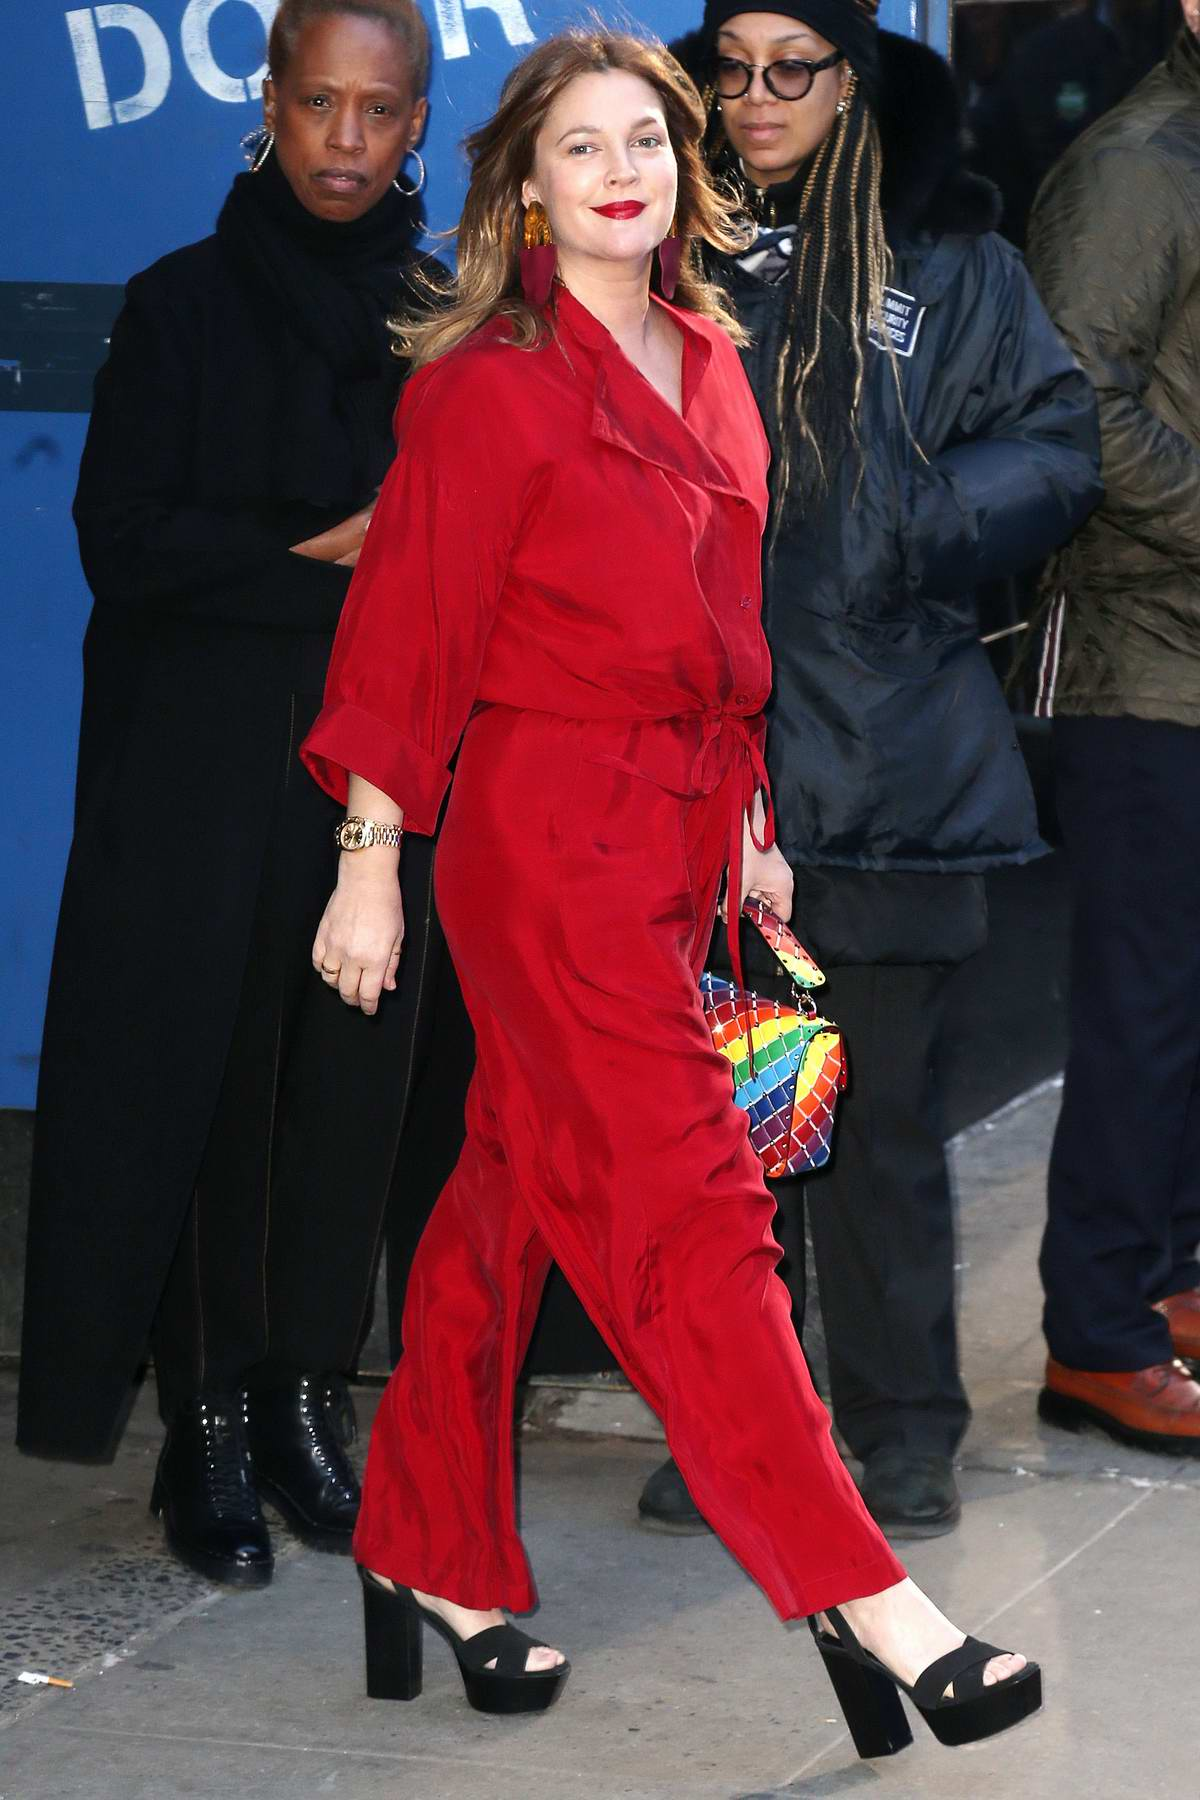 Drew Barrymore looks striking in a bright red jumpsuit as she visits Good Morning America in New York City